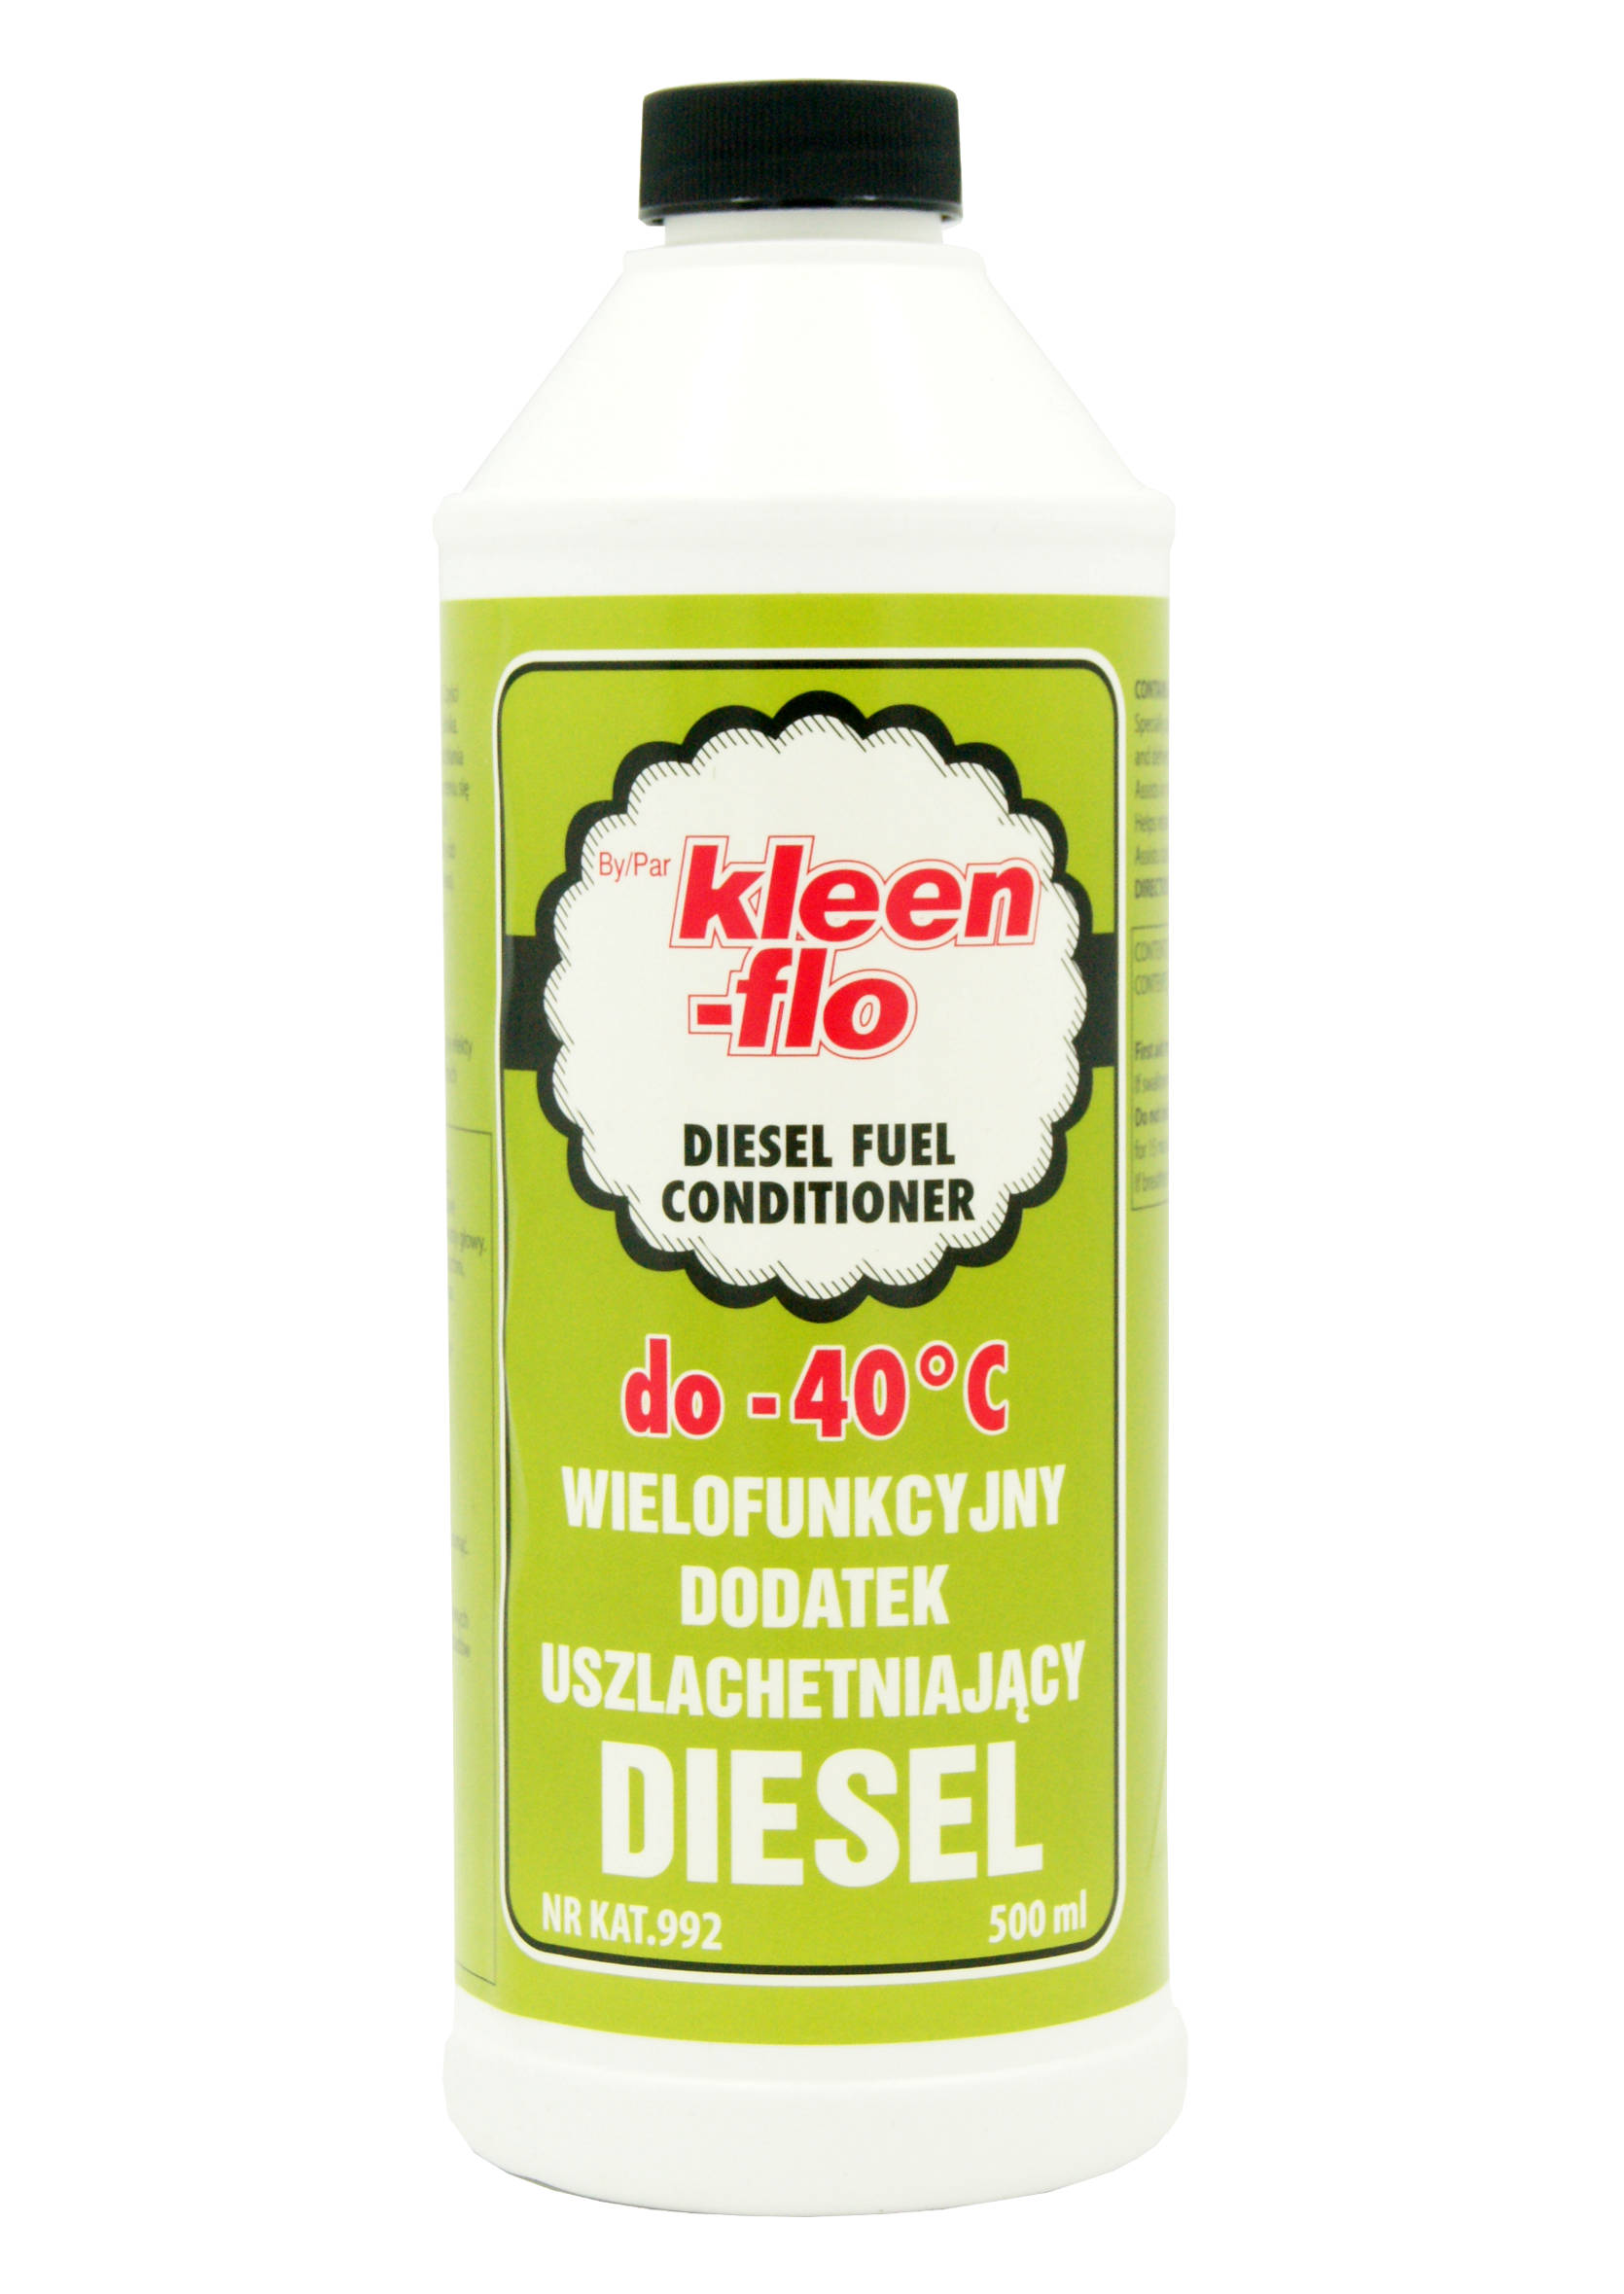 Kleen-Flo Diesel Fuel Conditioner 500ml Uszlachetniający Dodatek do Diesla